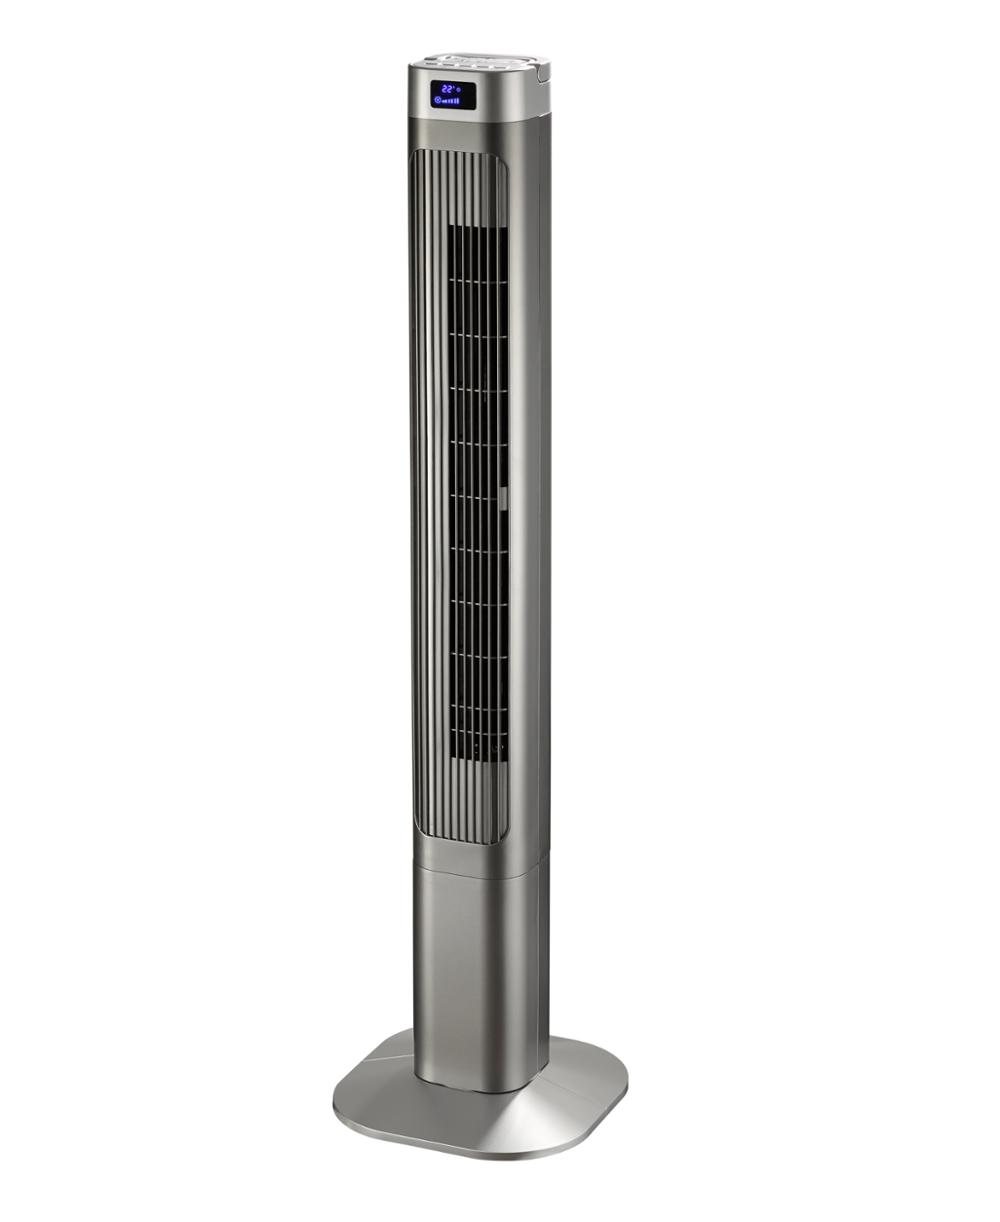 Electric Tower Fan Lcd Display Screens